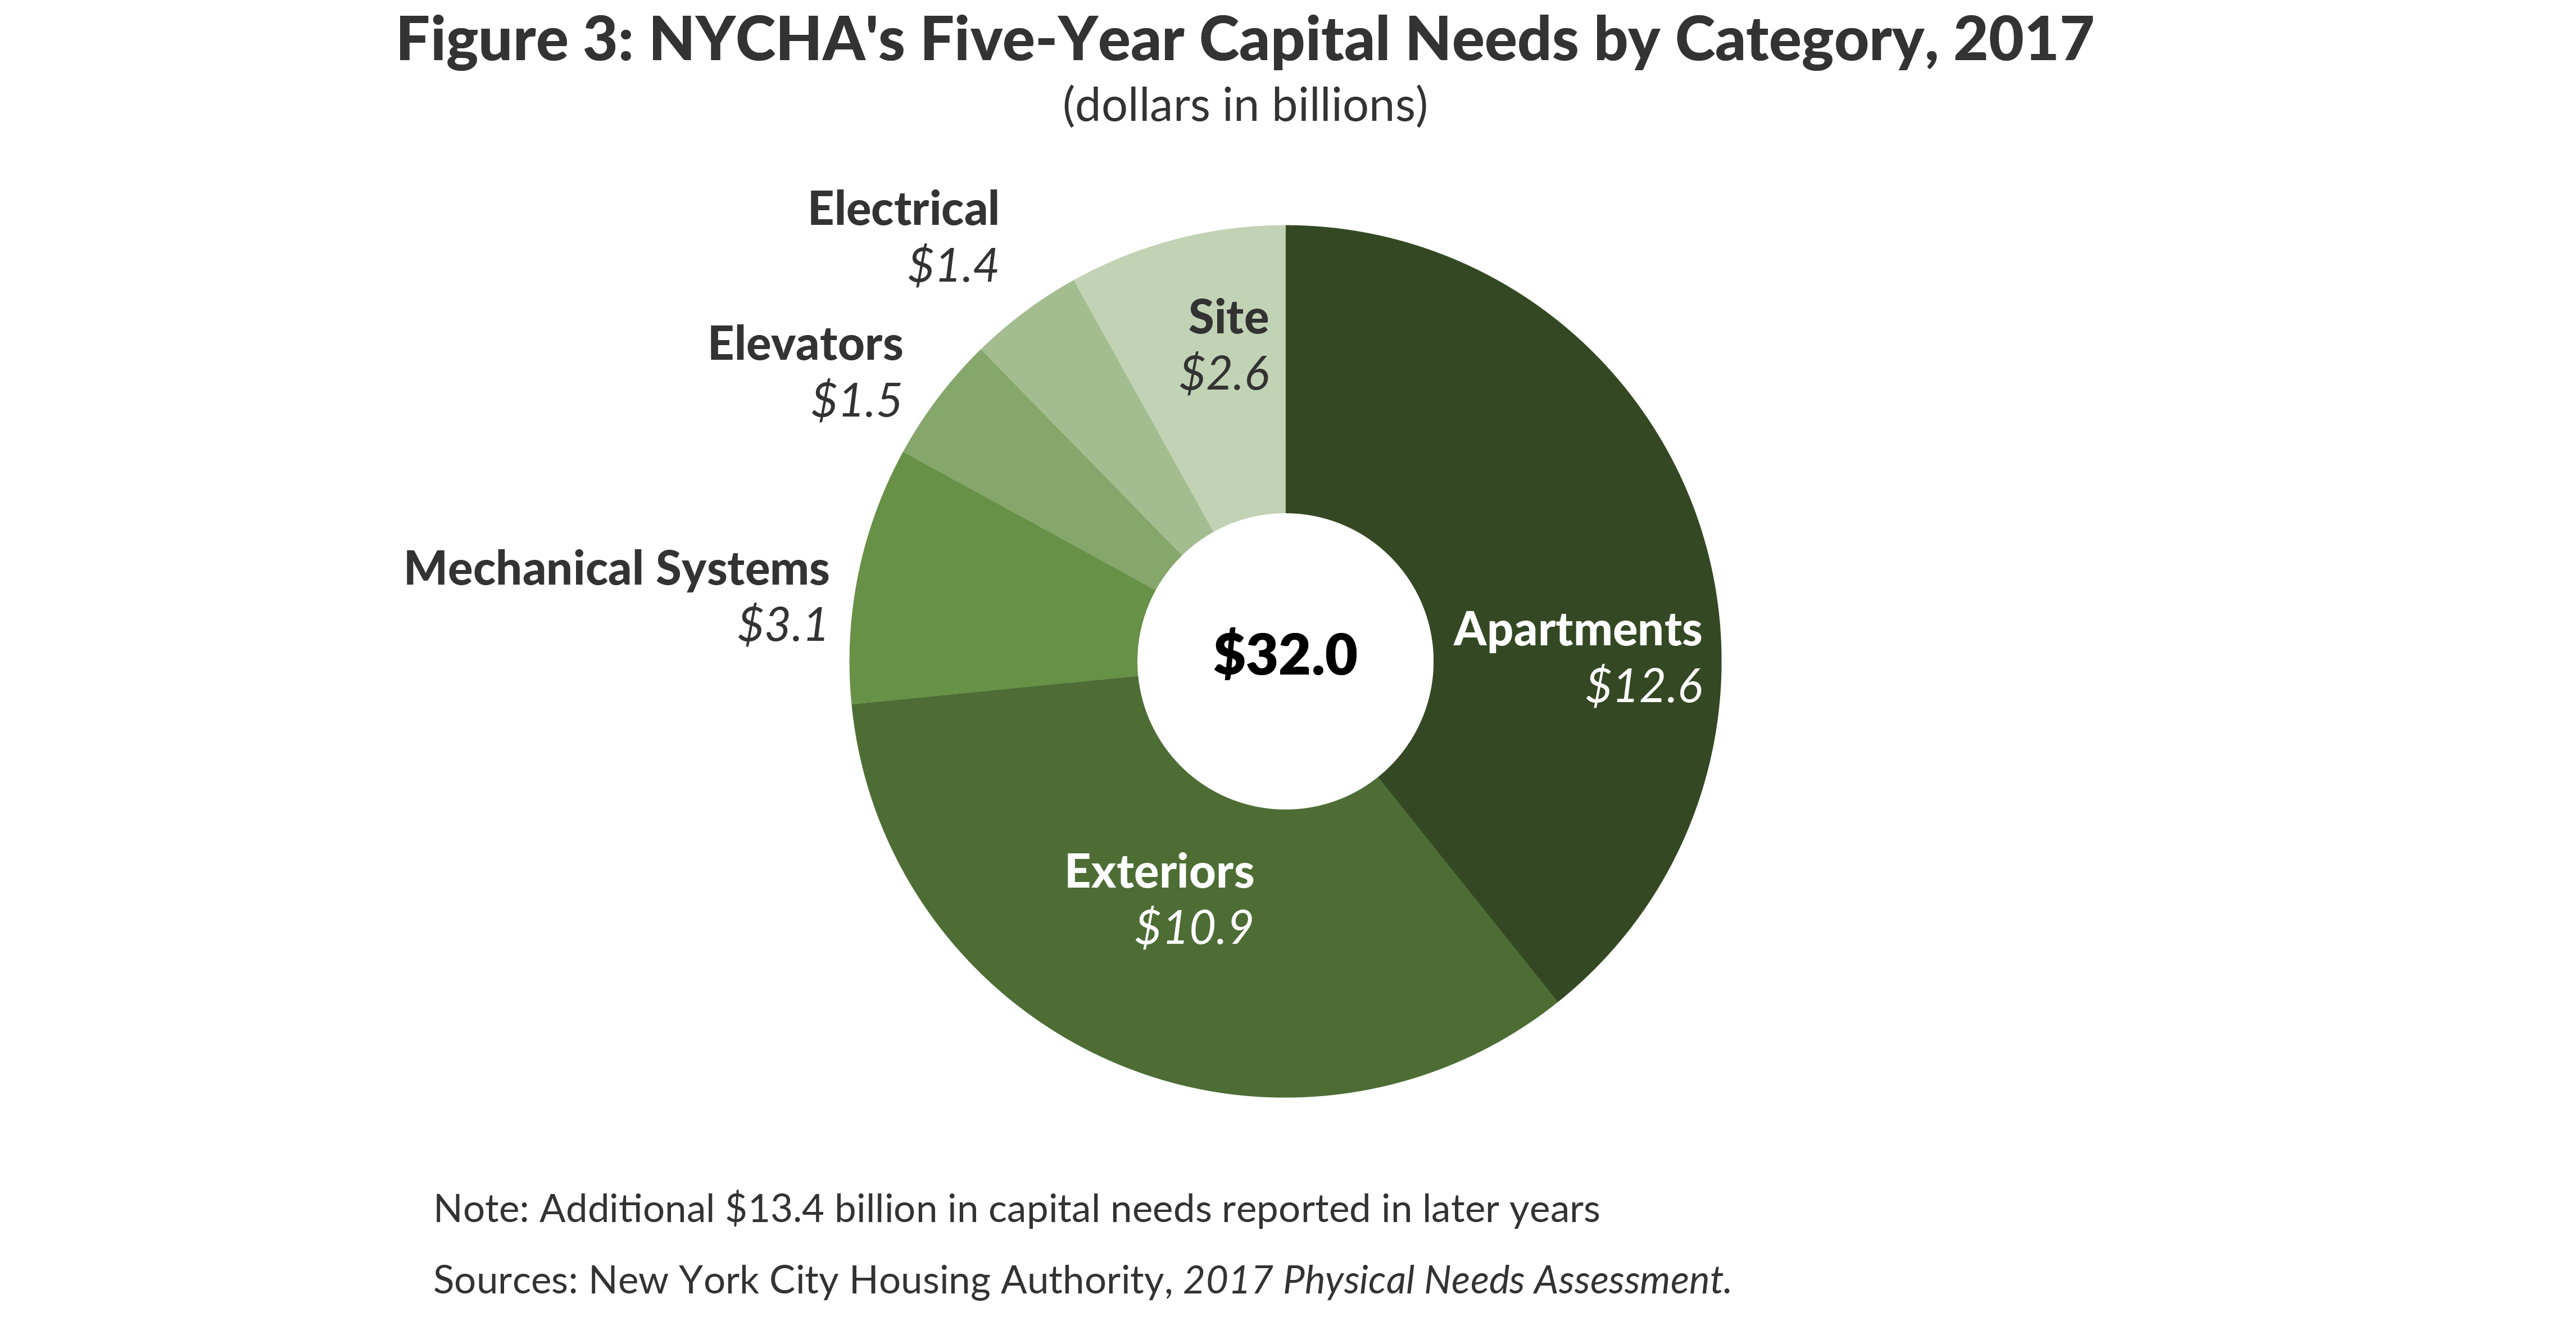 Figure 3: NYCHA's Five-Year Capital Needs by Category, 2017